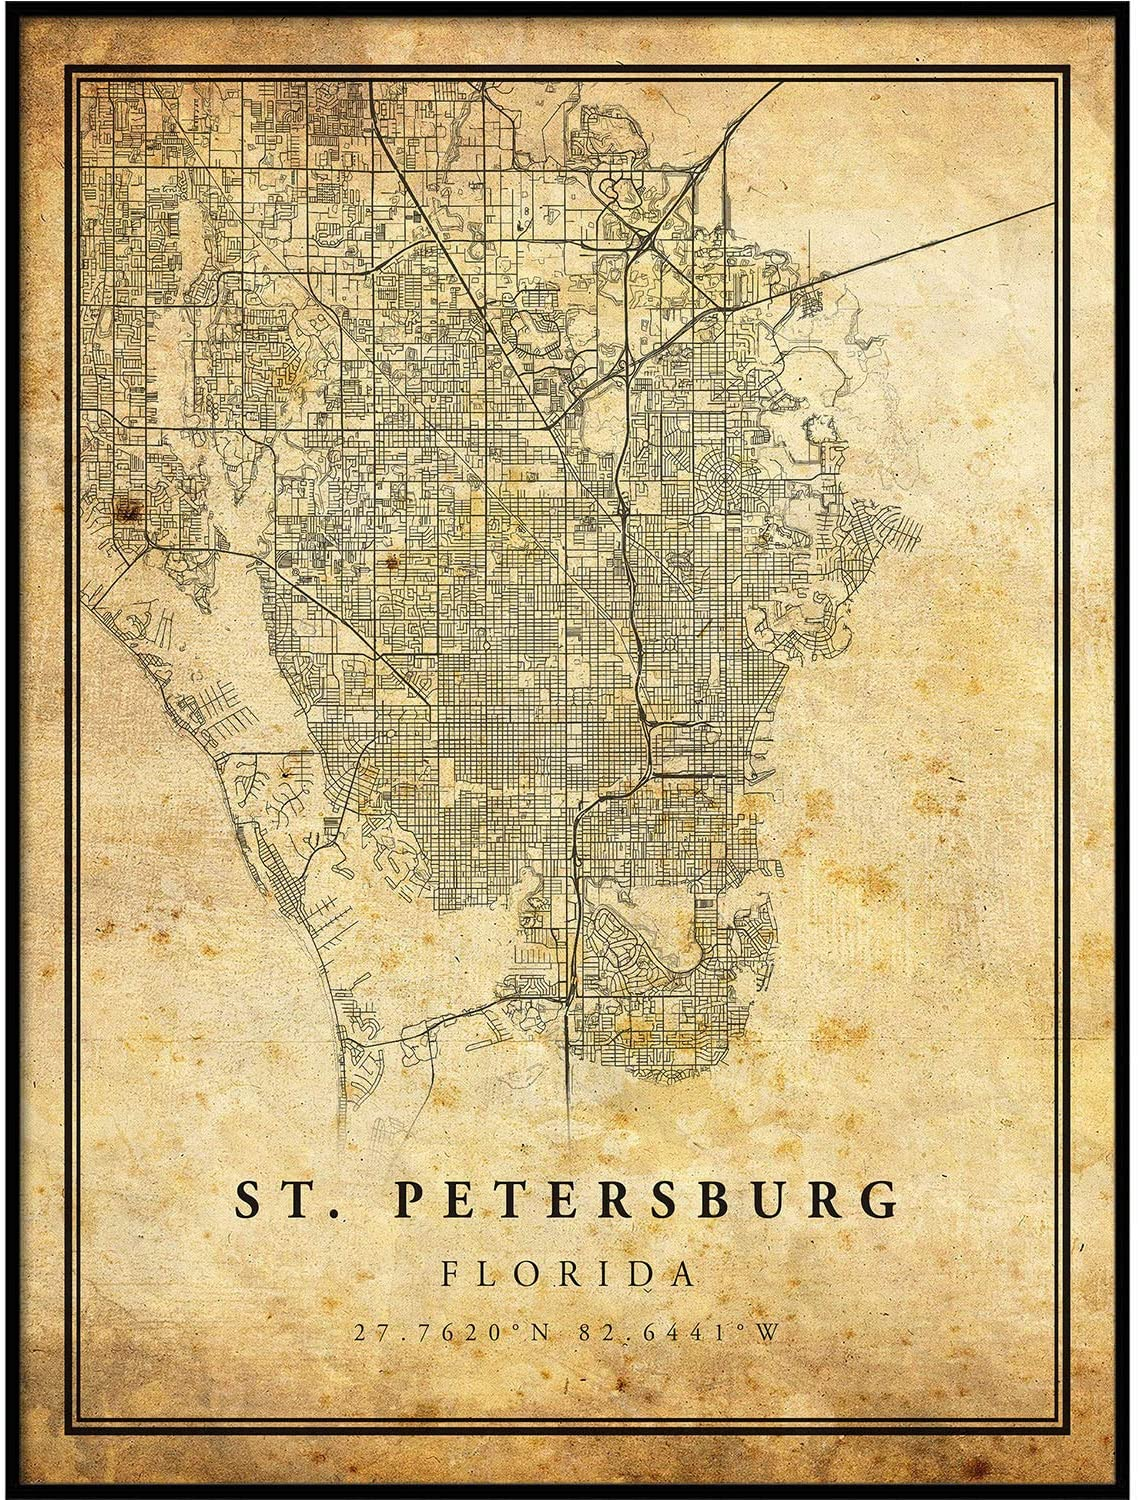 St. Petersburg map Vintage Style Poster Print | Old City Artwork Prints | Antique Style Home Decor | Florida Wall Art Gift | Old map Print 11x14